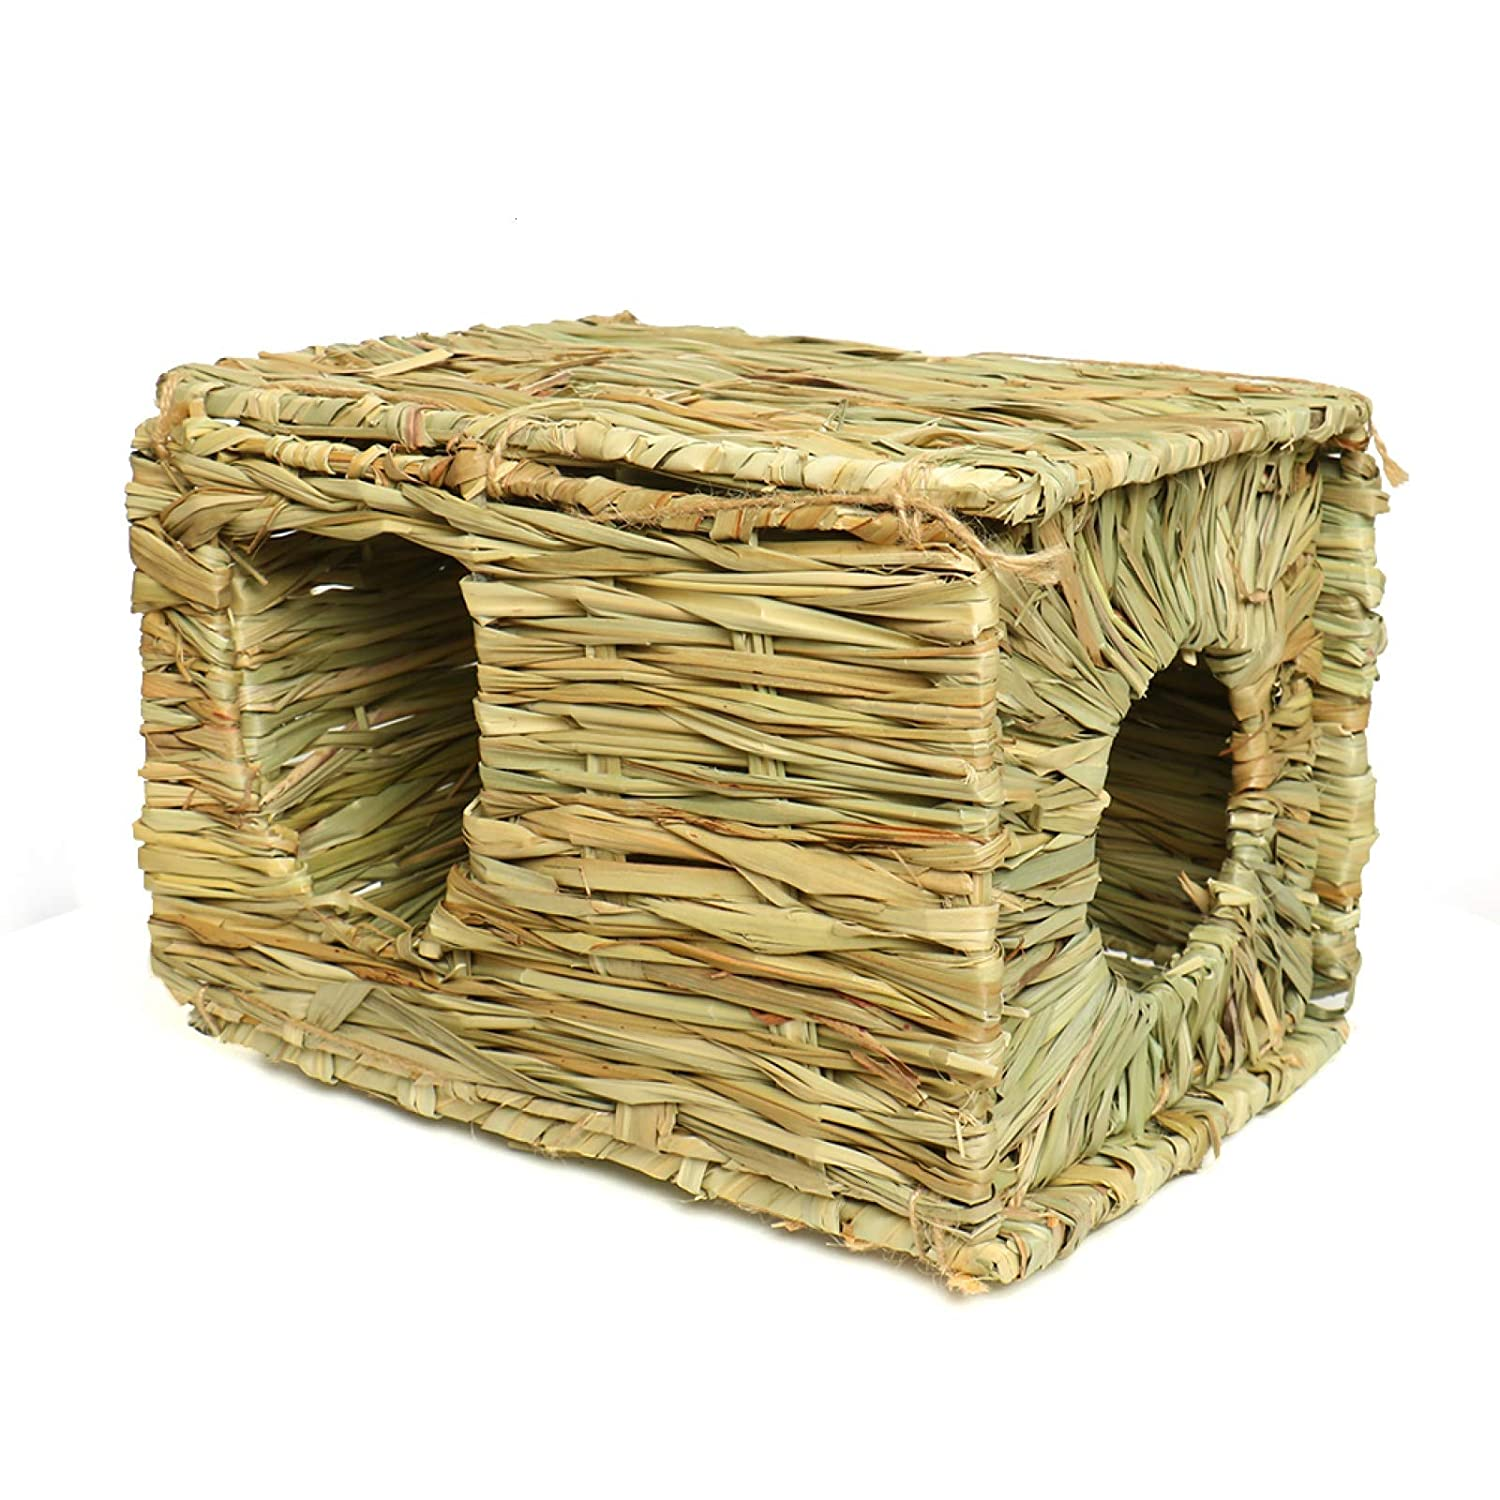 Rocinha Rabbit Grass House Hideaway Toy Natural Straw Woven Grass Bed Grass House for Rabbits | Rabbit Shelters